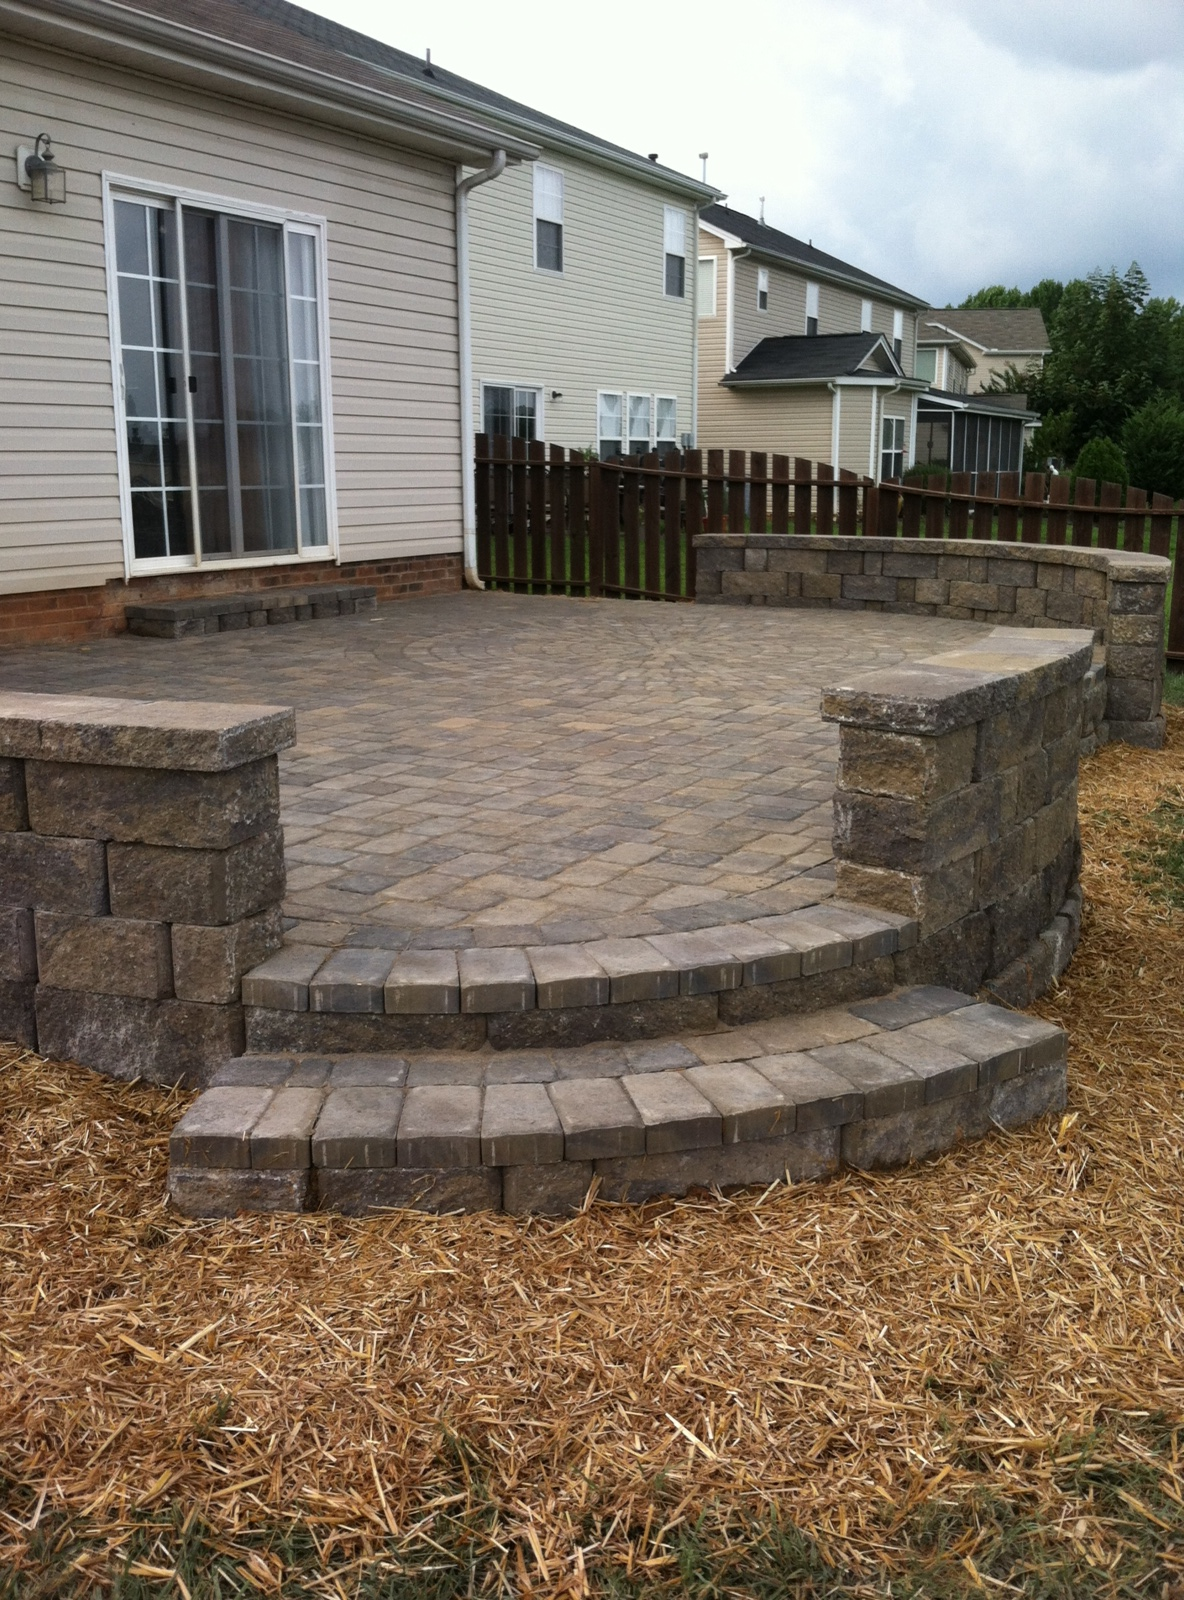 Paver-patio-with-retaining-wall